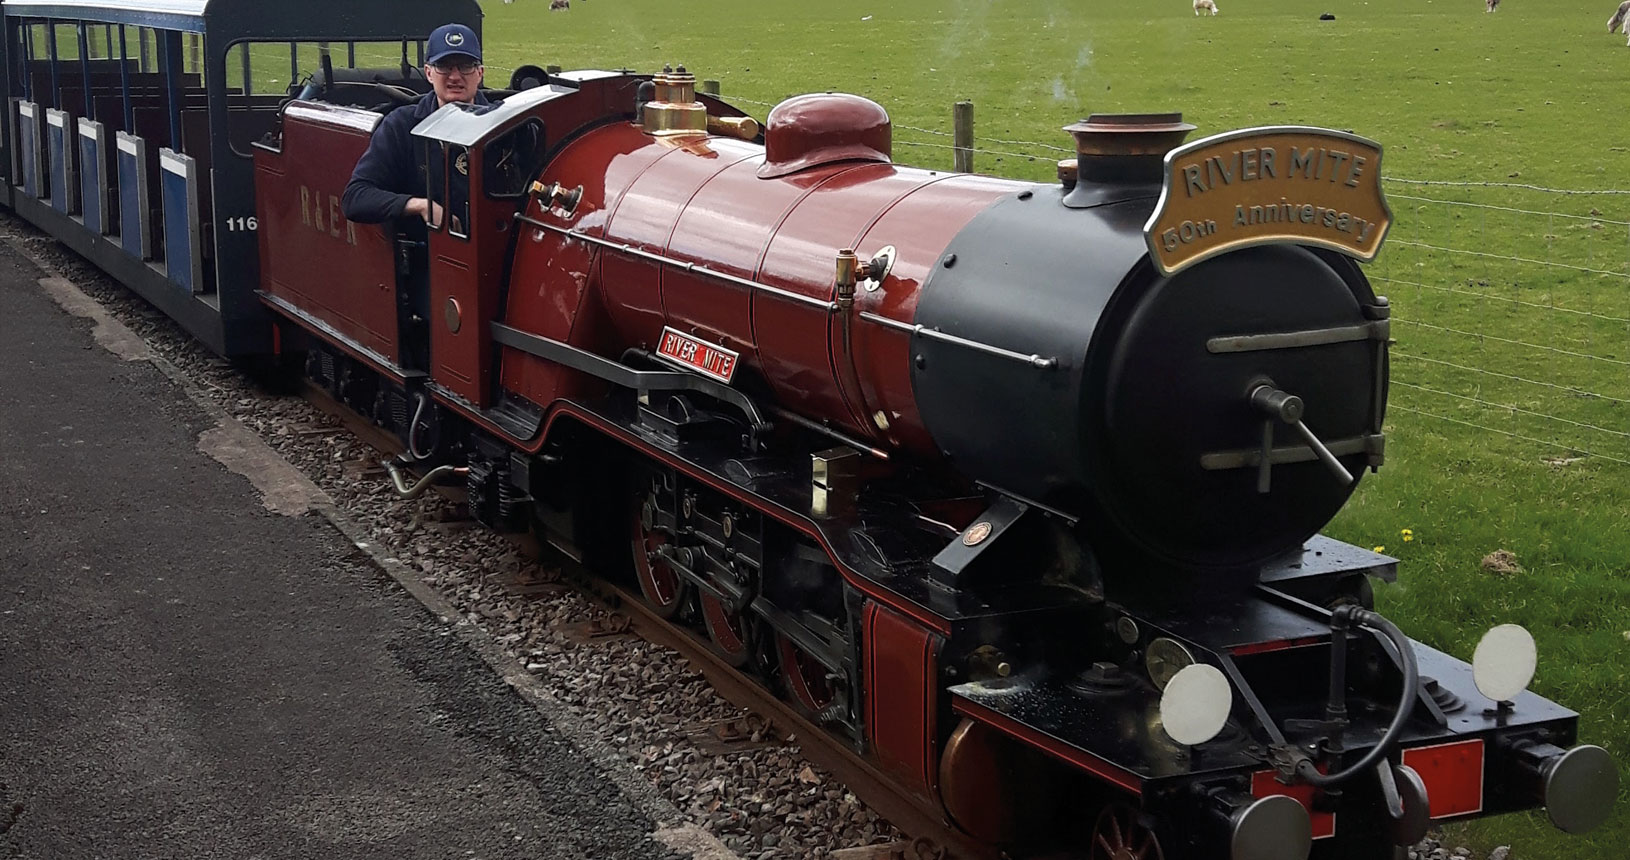 Lake District steam train